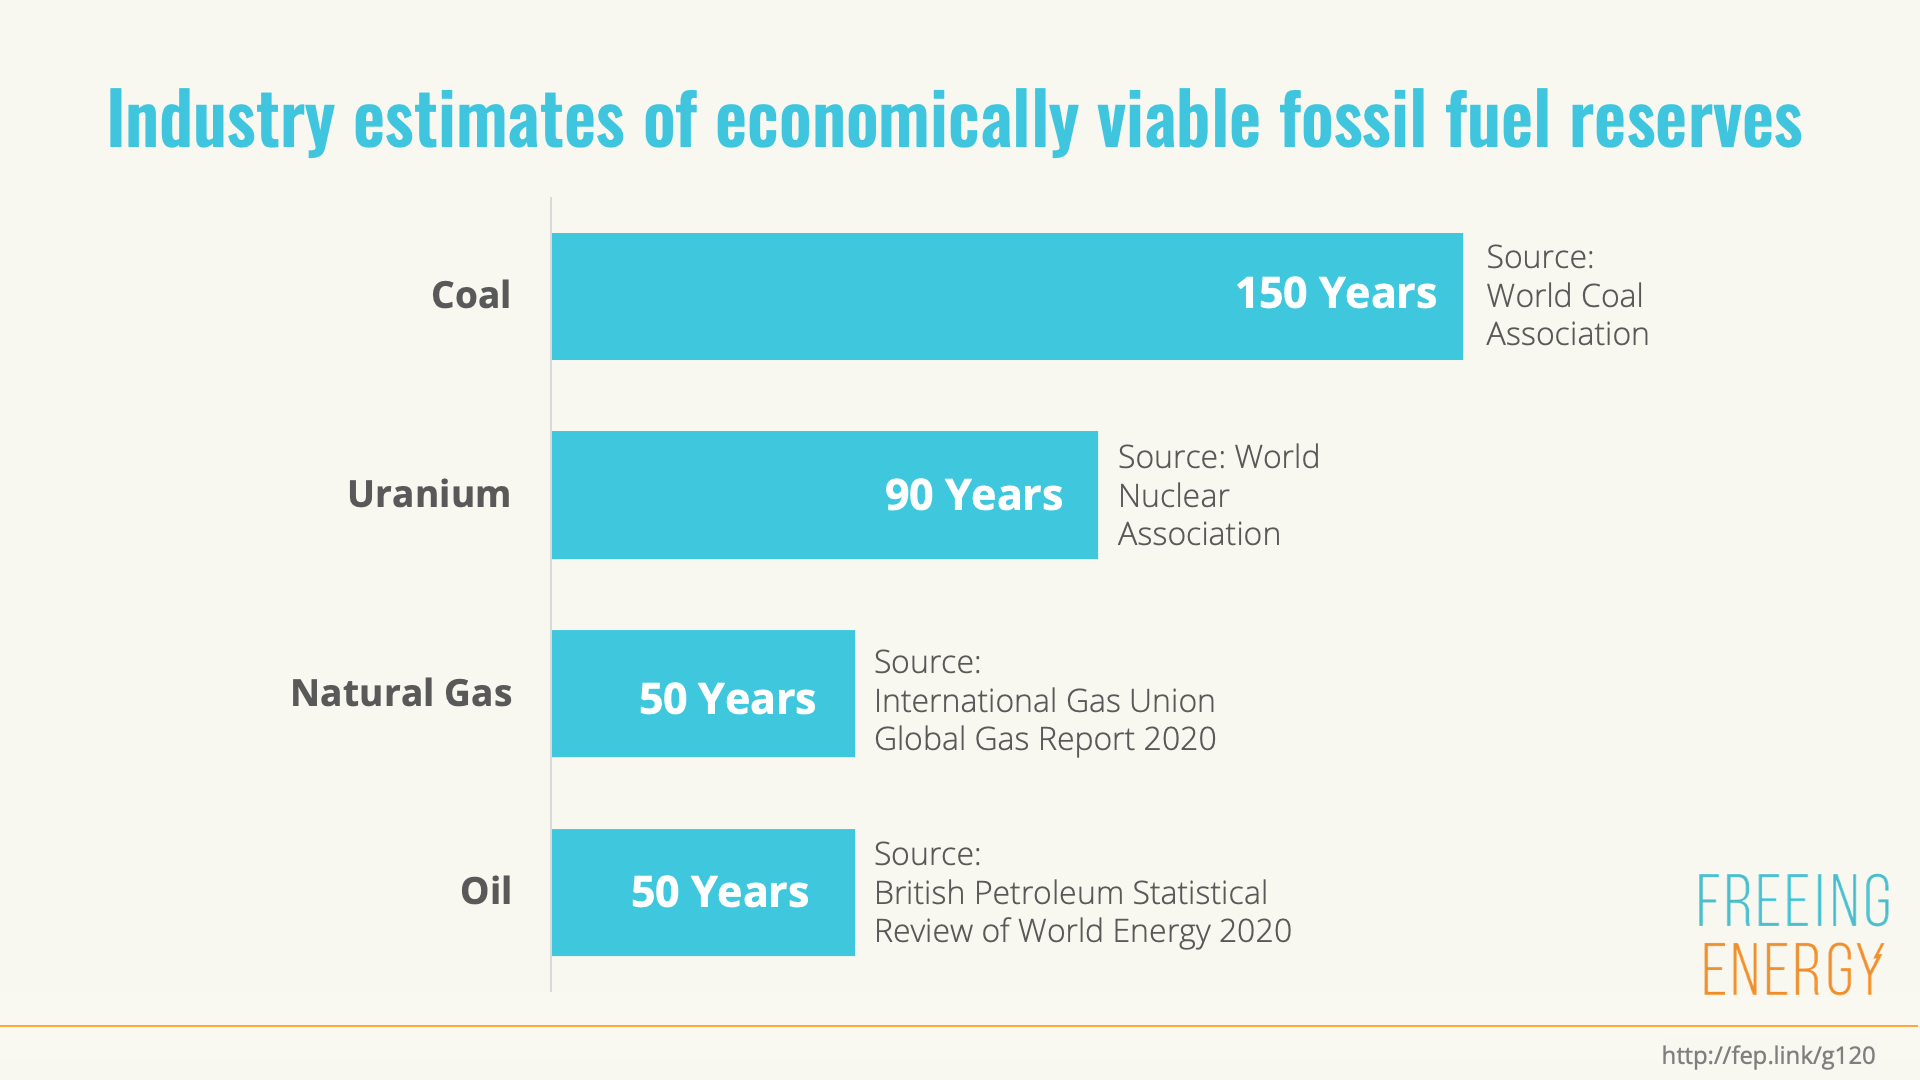 Fossil Fuel Reserves will not last more than 150 years